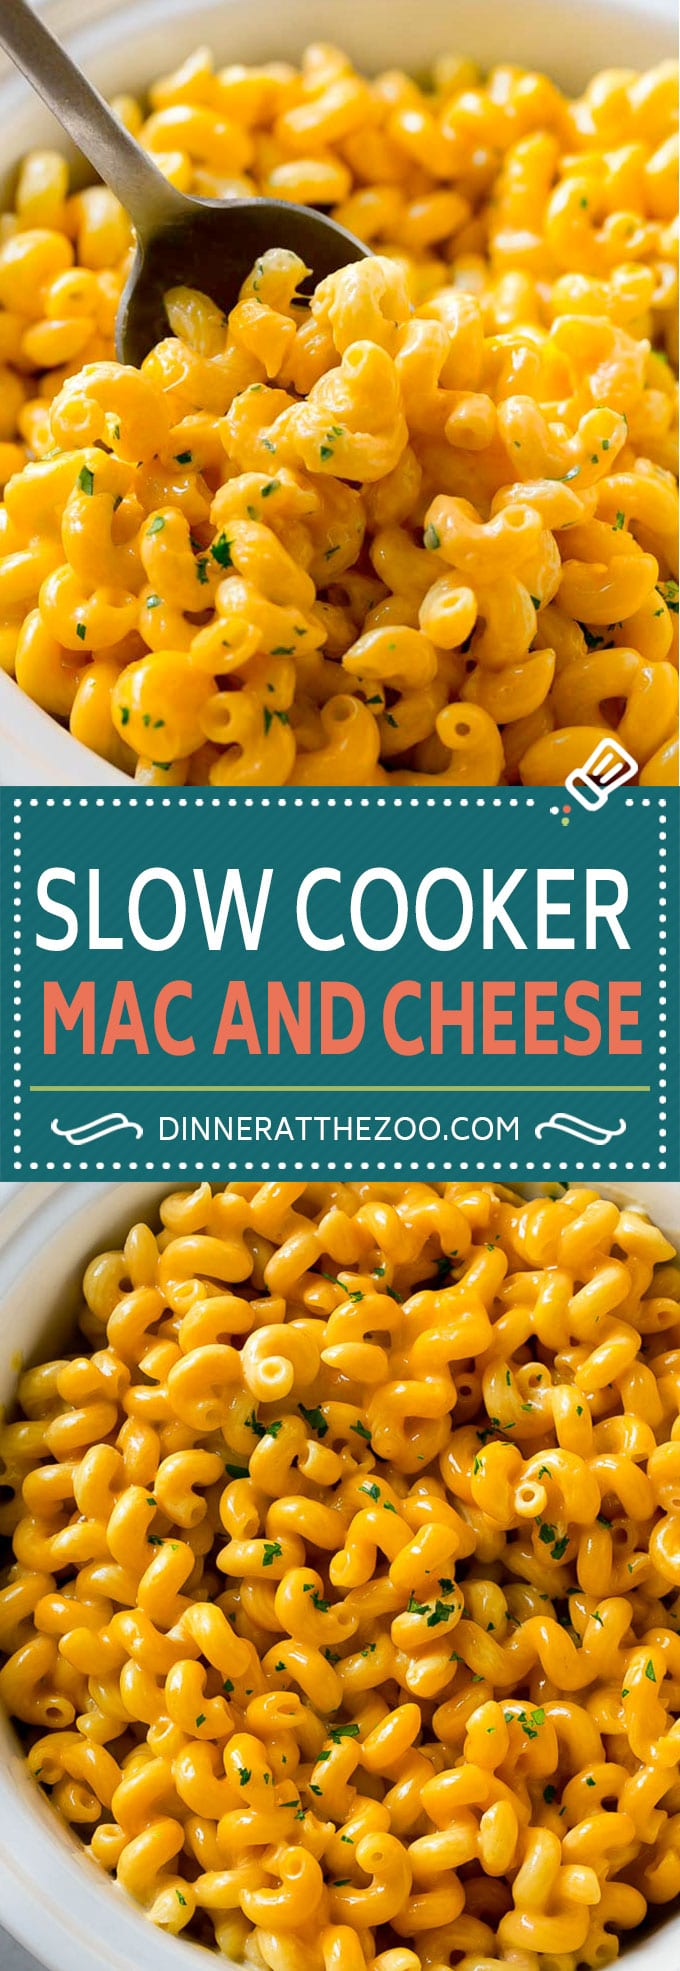 Slow Cooker Mac and Cheese | Crock Pot Macaroni and Cheese | Homemade Macaroni and Cheese | Mac and Cheese Recipe #macandcheese #pasta #cheese #slowcooker #crockpot #dinneratthezoo